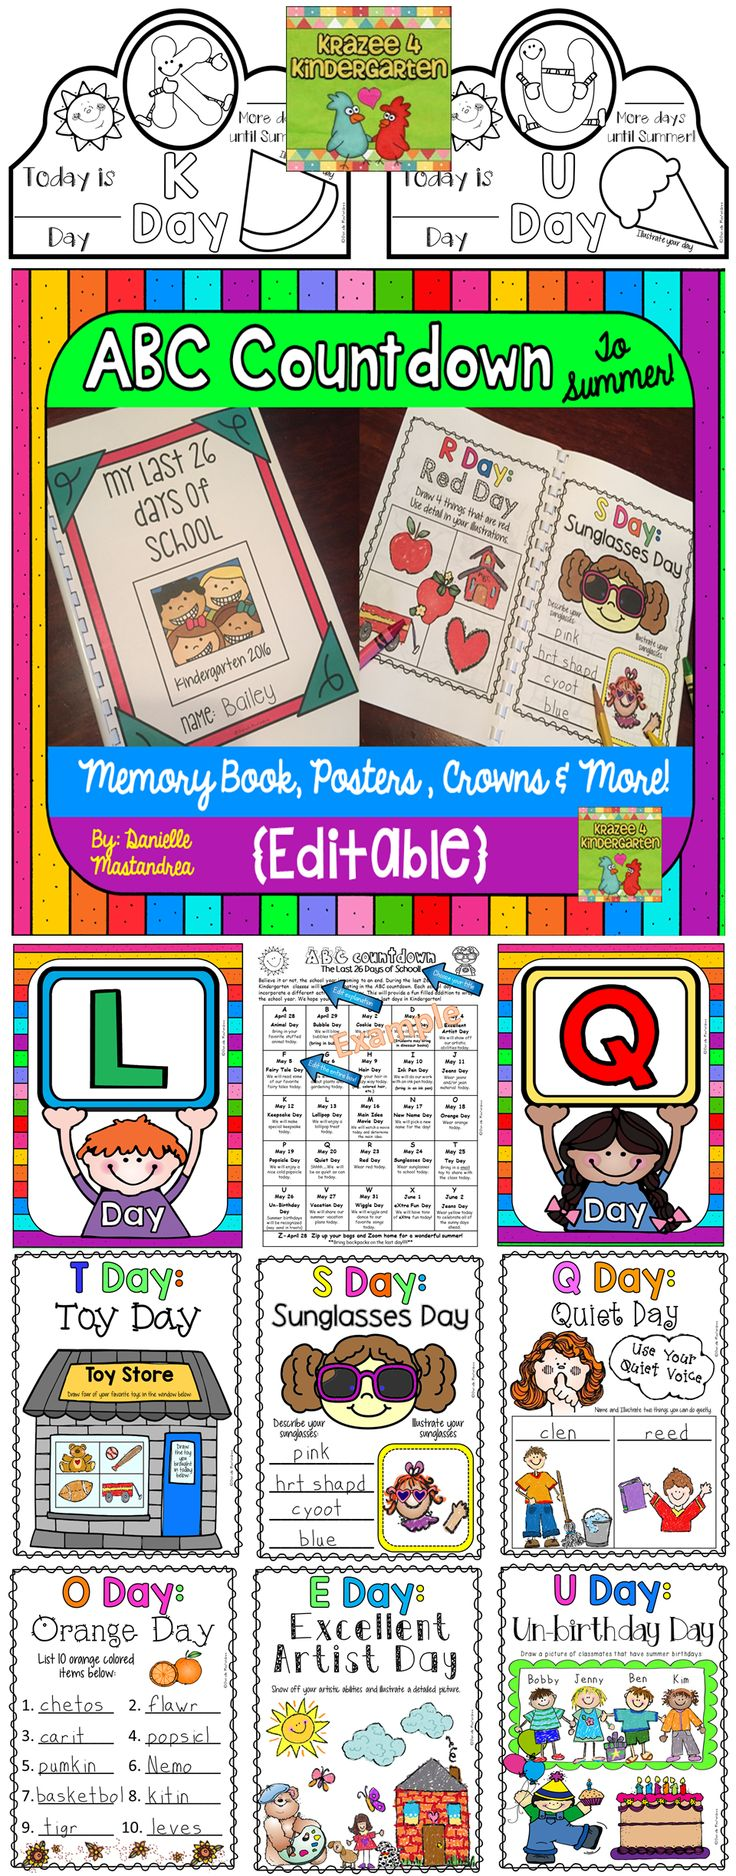 Countdown to Summer. End of the year ABC countdown to the last day of school. Great for Kindergarten, First & Second grade!